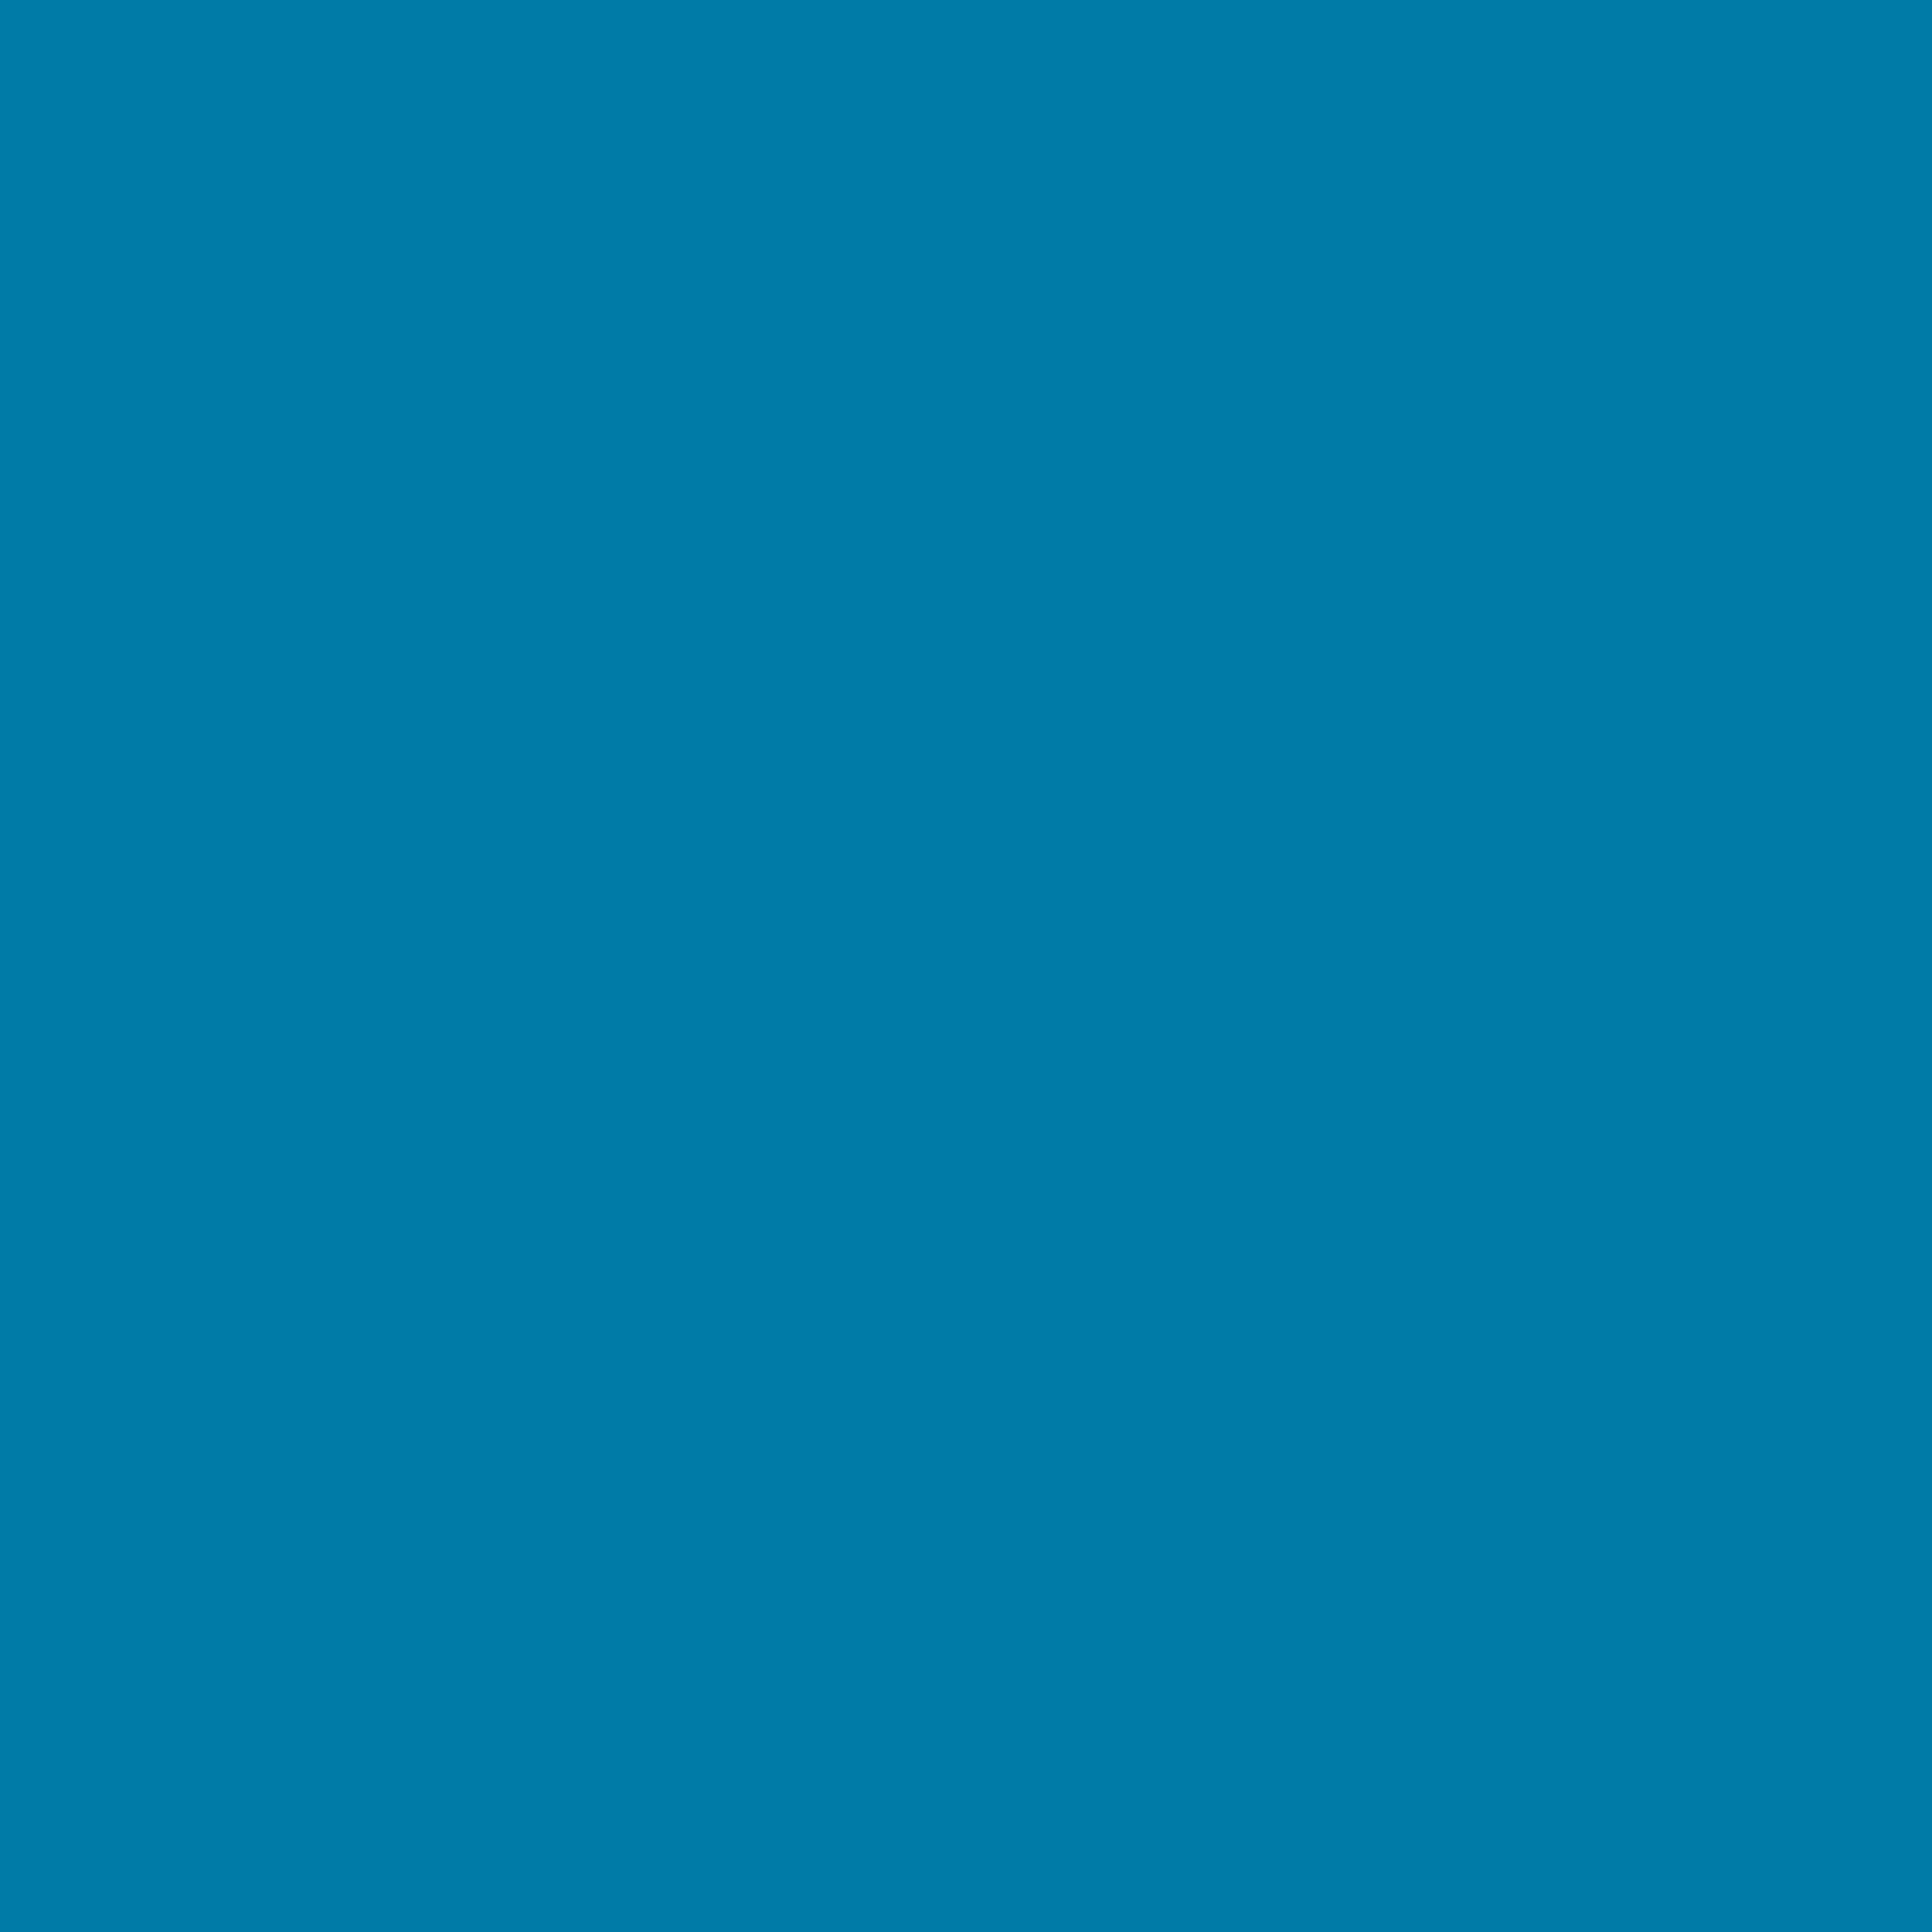 2048x2048 Cerulean Solid Color Background